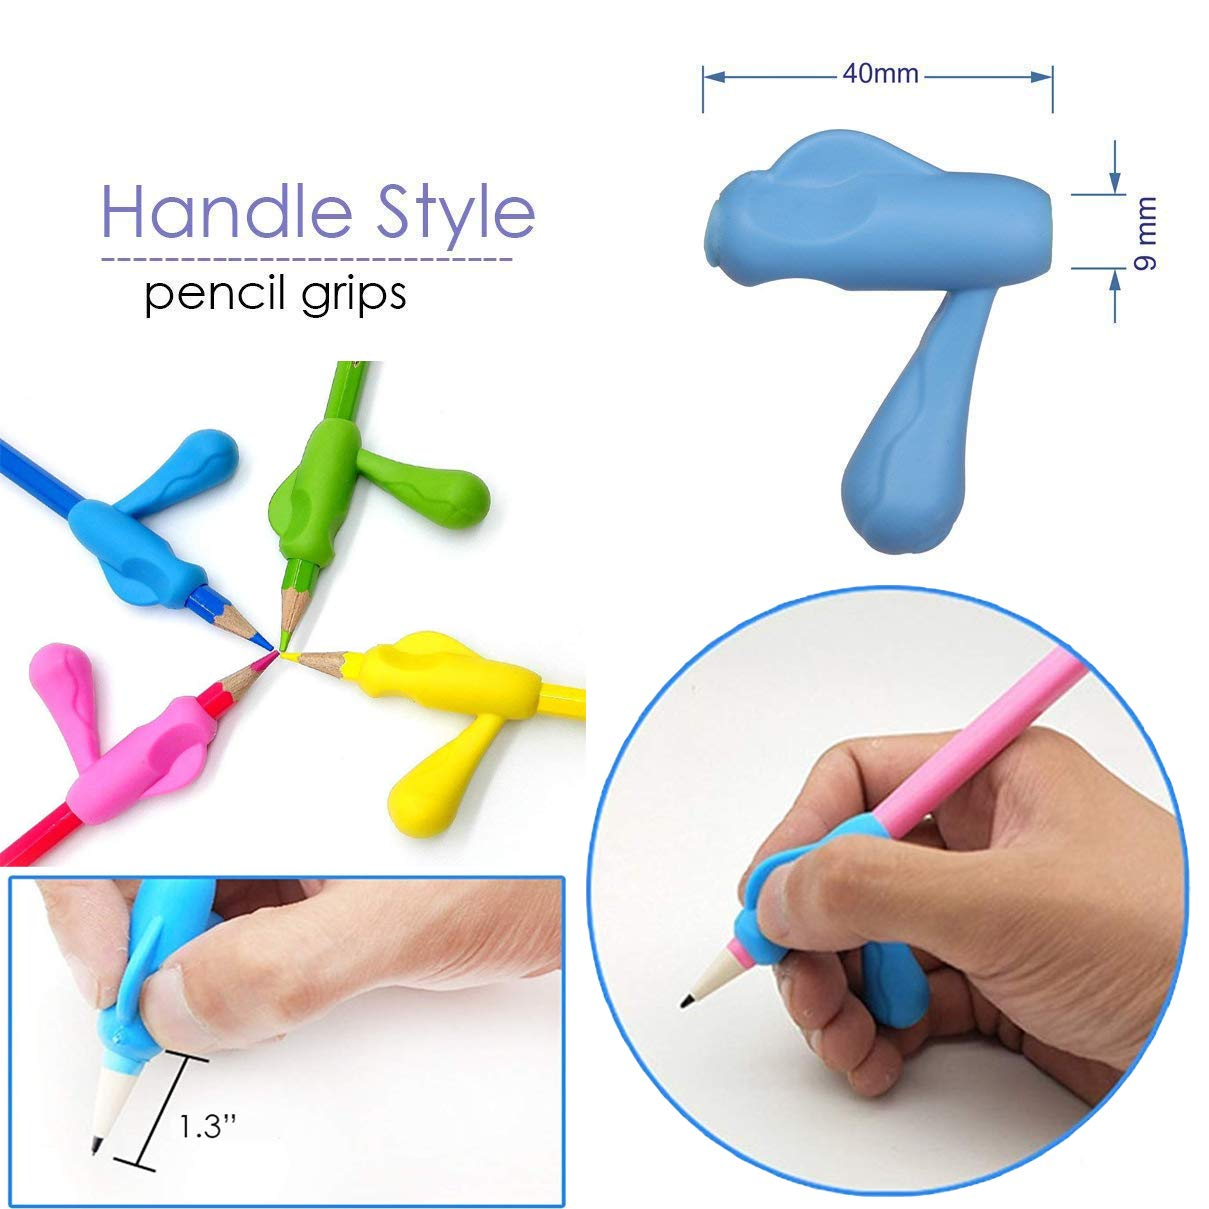 Pencil Writing Grips for Kids Handwriting 20 Pack Pencil Holder Utensils Pen Writing Aid Grip Posture Correction Tool with Comfortable Ergonomic Writing by Bomach (Image #4)